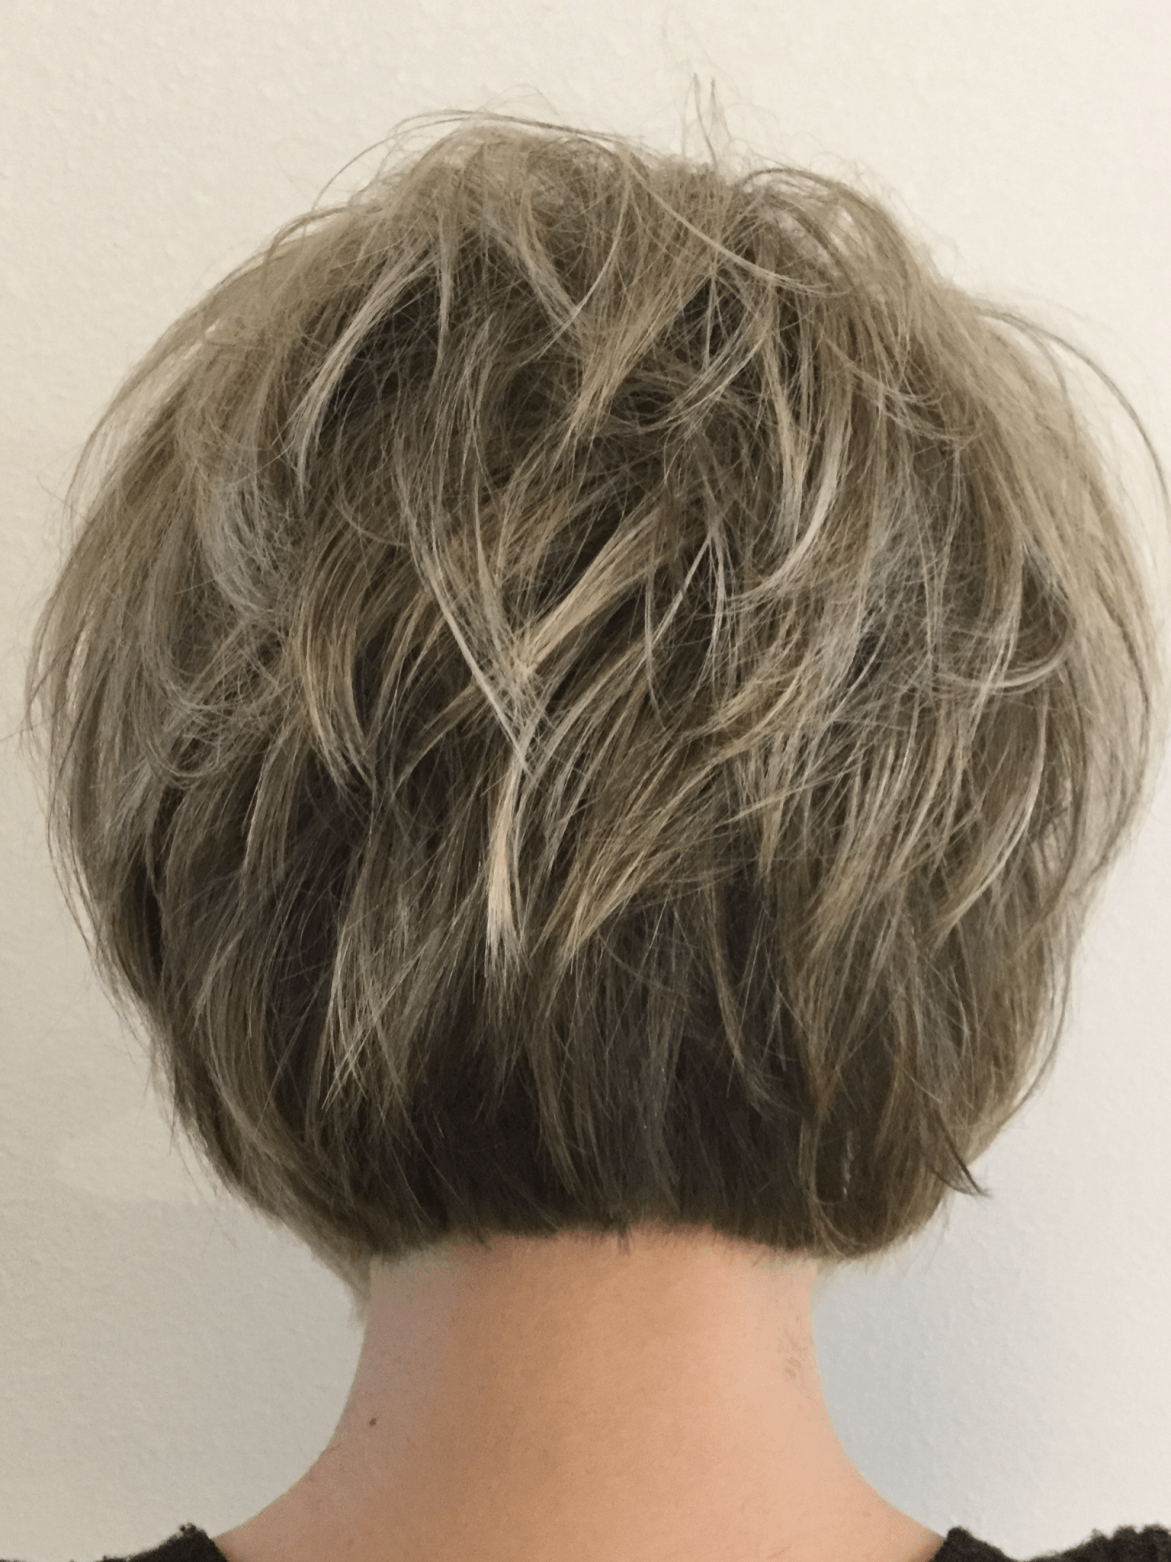 48 Short Hair Style Ideas For Women That Make It More